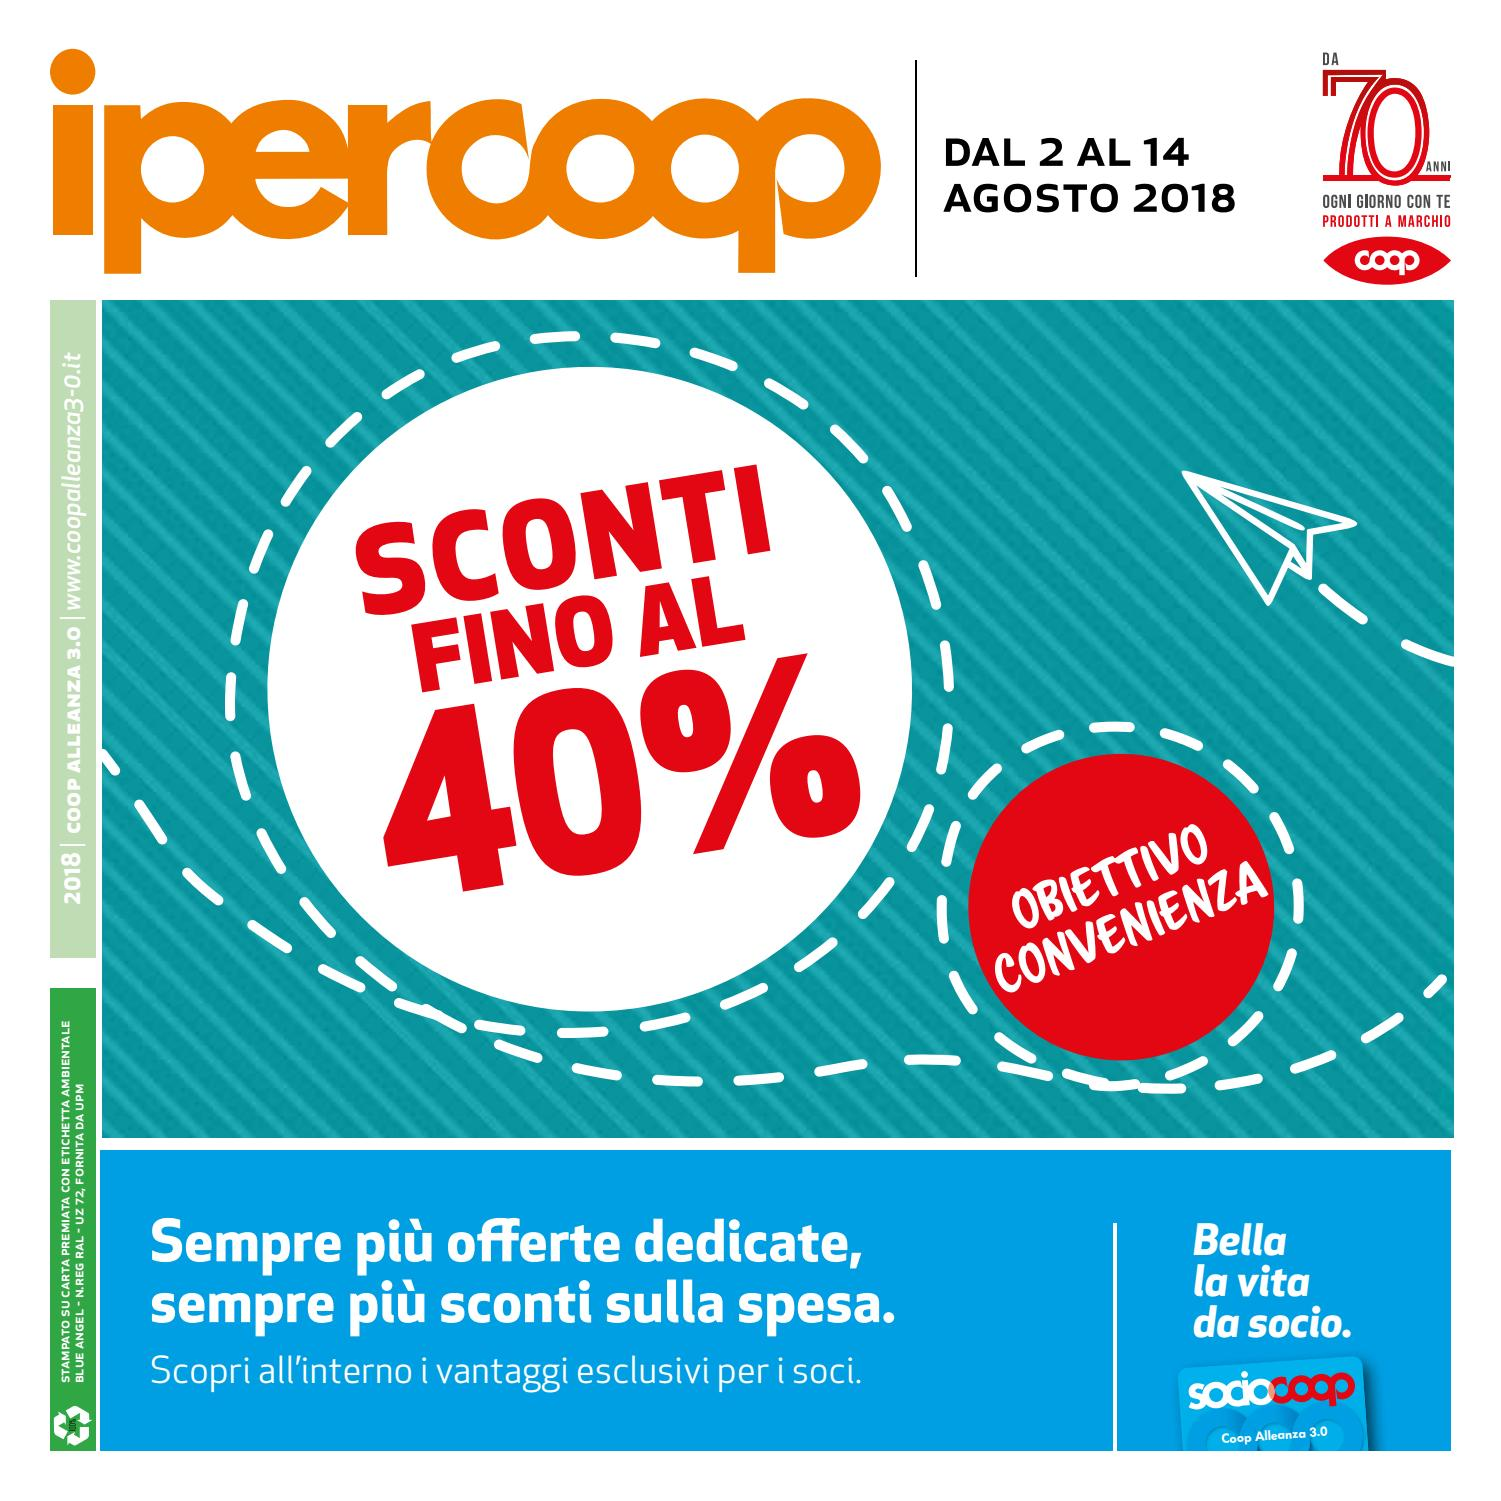 Tappeto Bambini Coop 52069 Ipmk Ch Pdf791973543605577691 By Coop Alleanza 3 Issuu